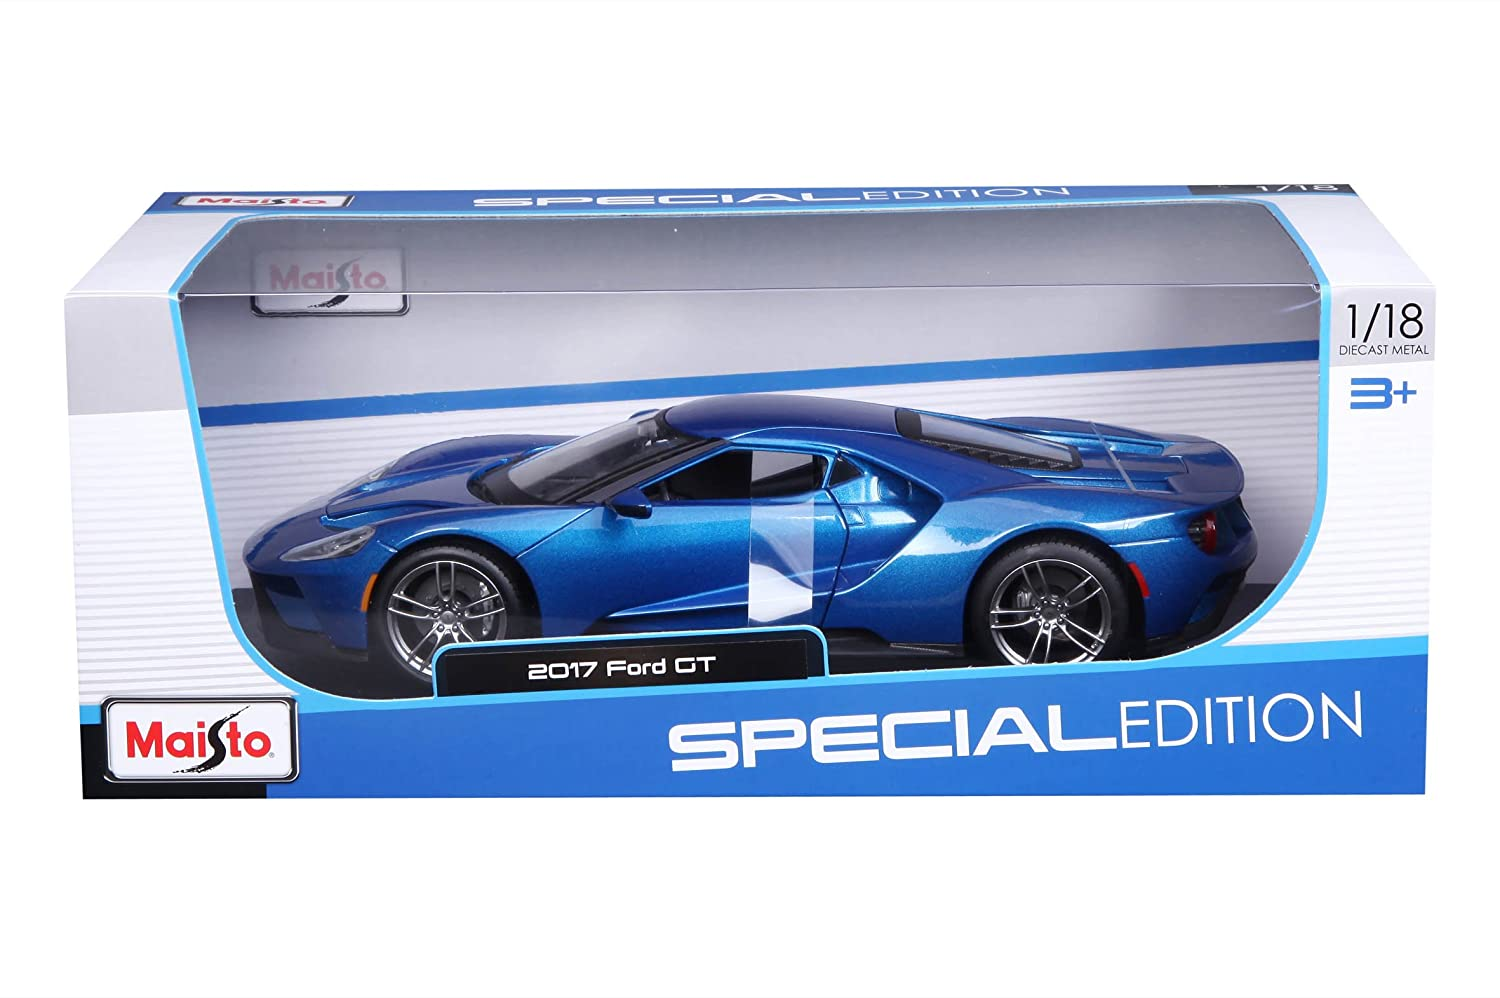 Maisto Special Edition  Ford Gt Variable Colorcast Vehicle  Scale Maisto Amazon In Toys Games